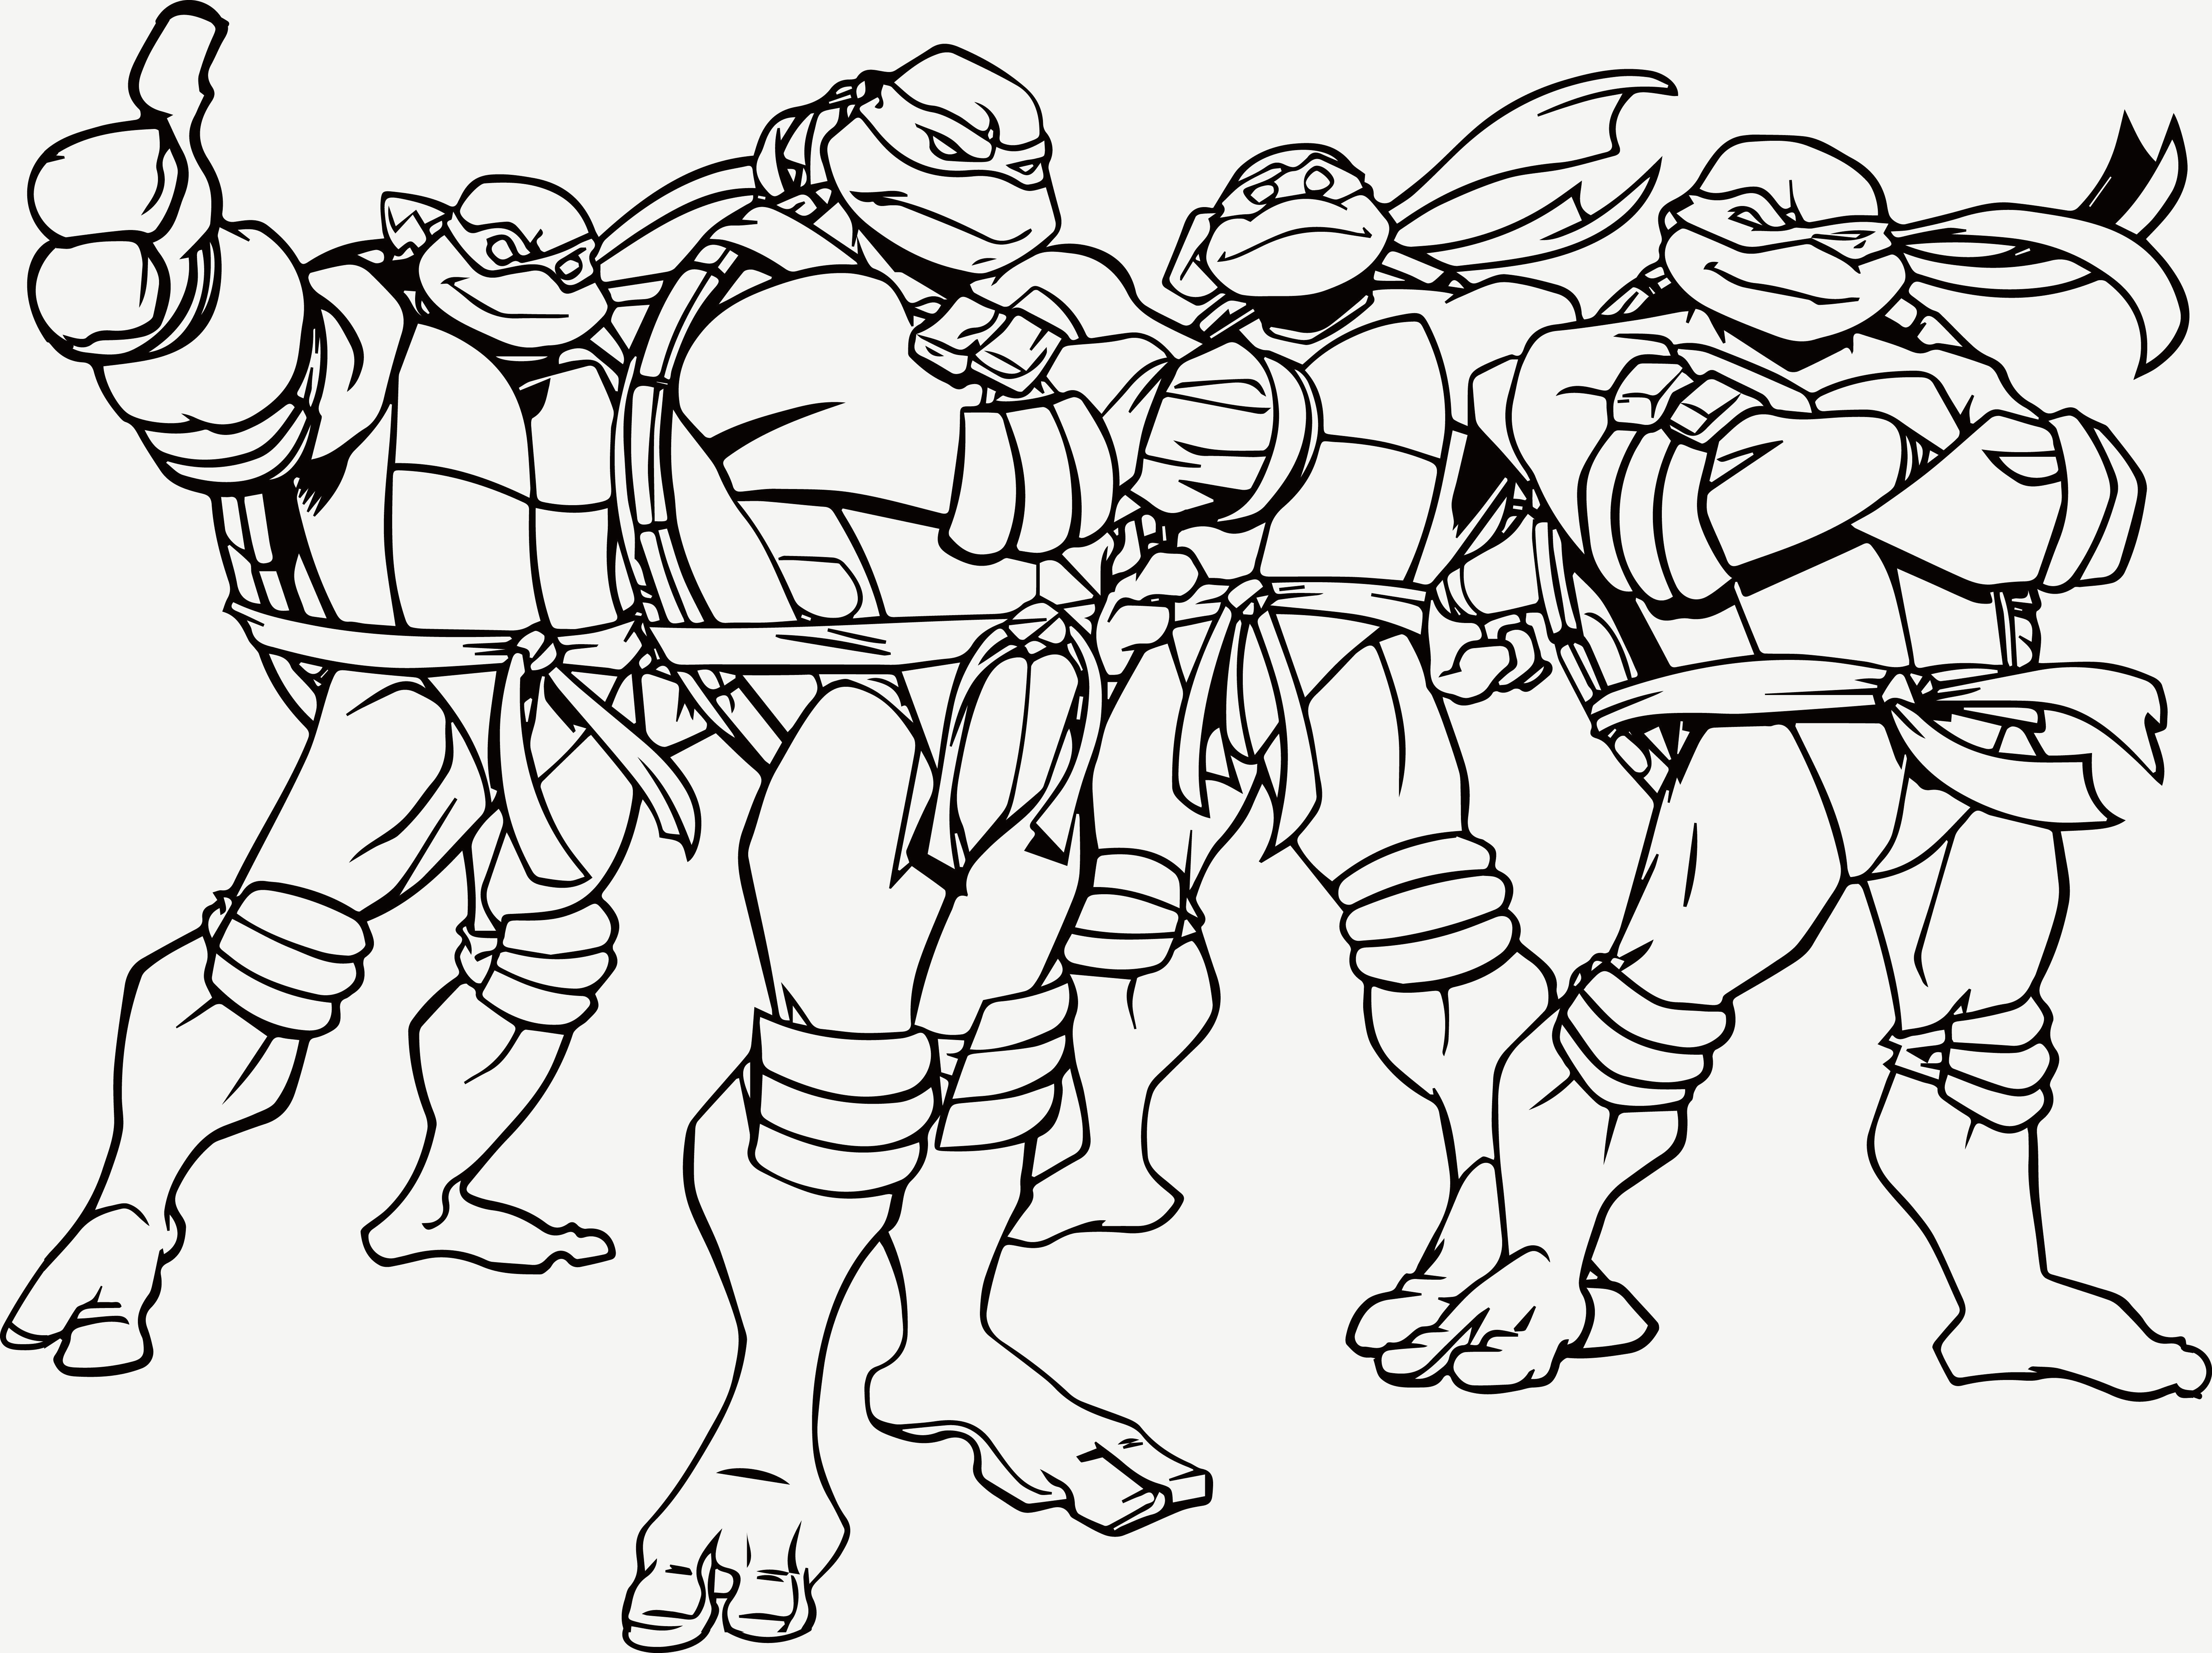 ninja turtles colouring pictures to print 5 best images of happy birthday ninja turtle coloring page to ninja turtles print pictures colouring